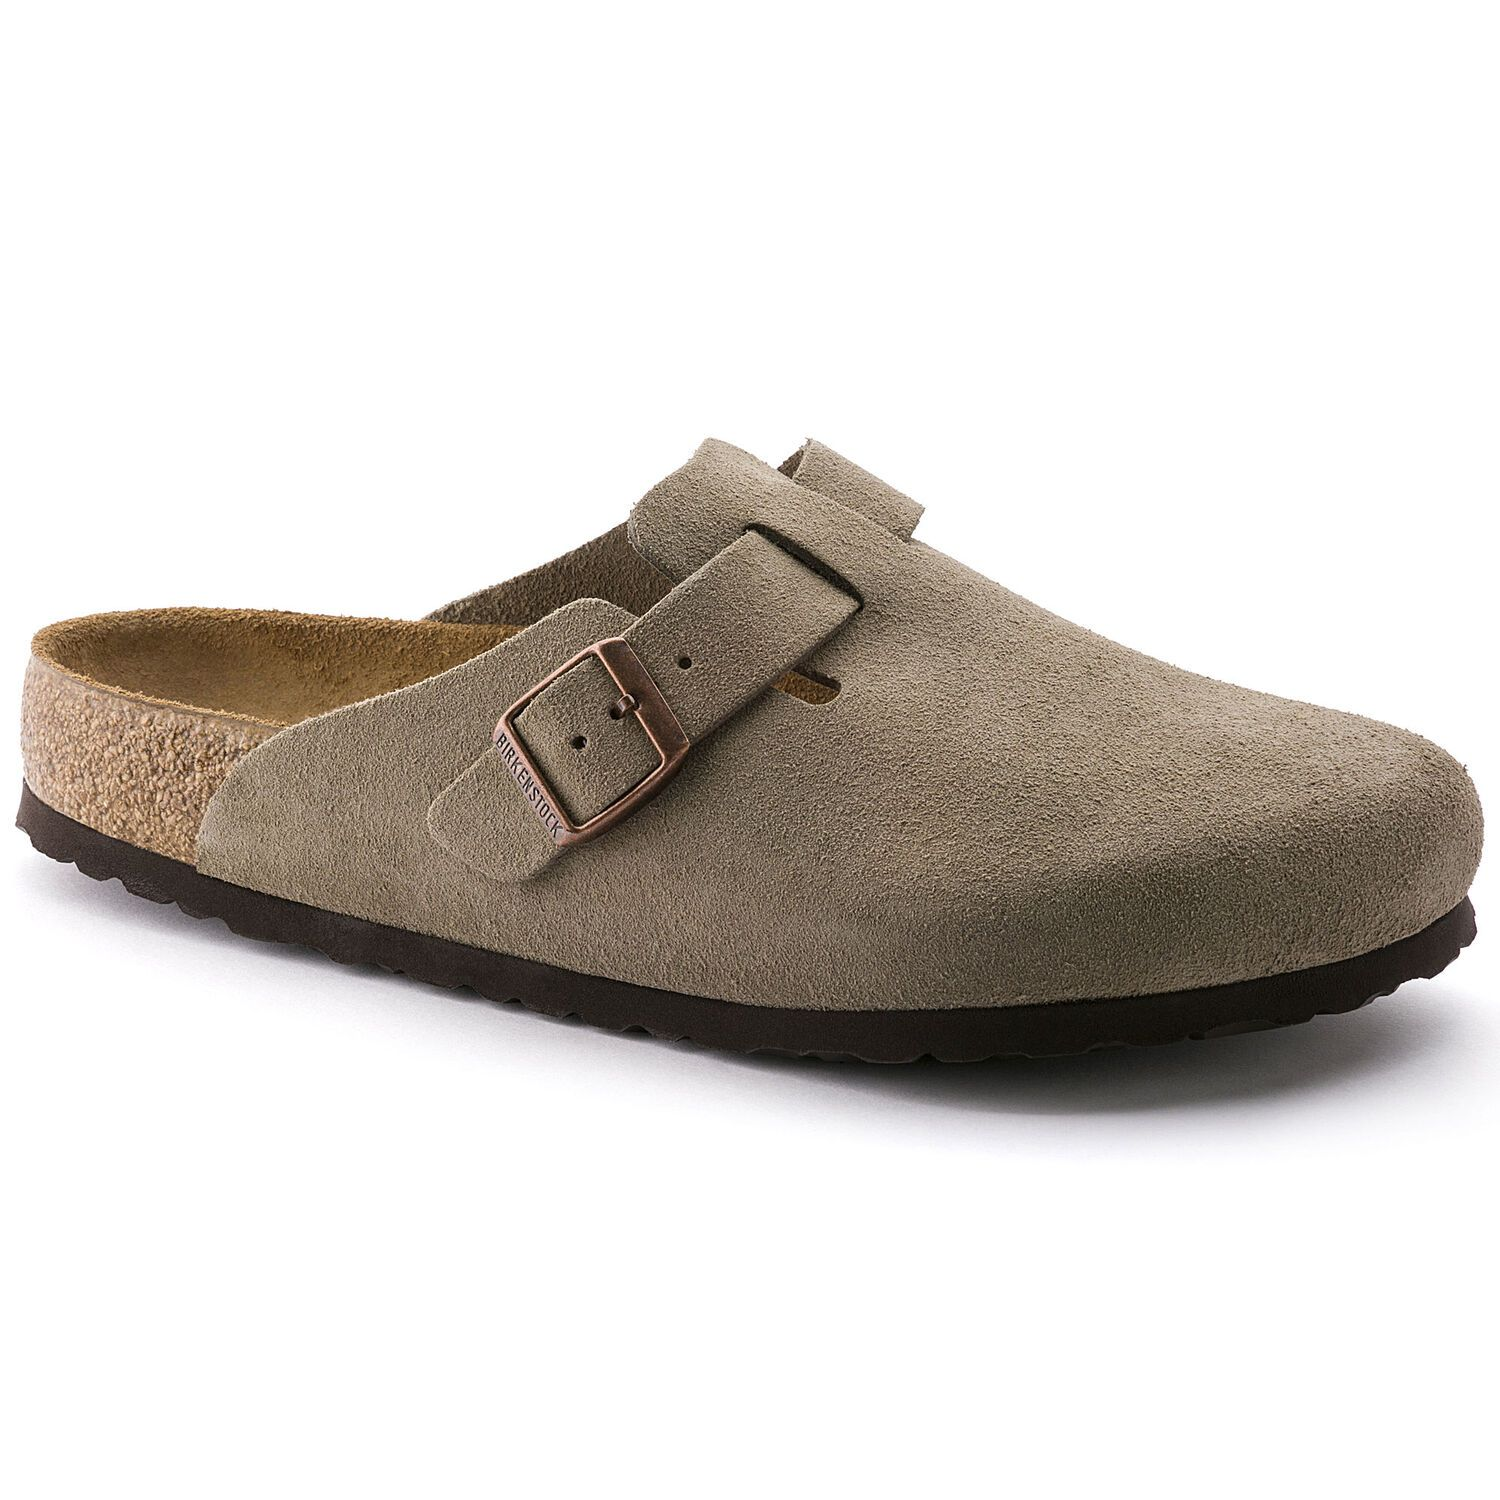 Birkenstock Boston SFB VL Taupe Narrow